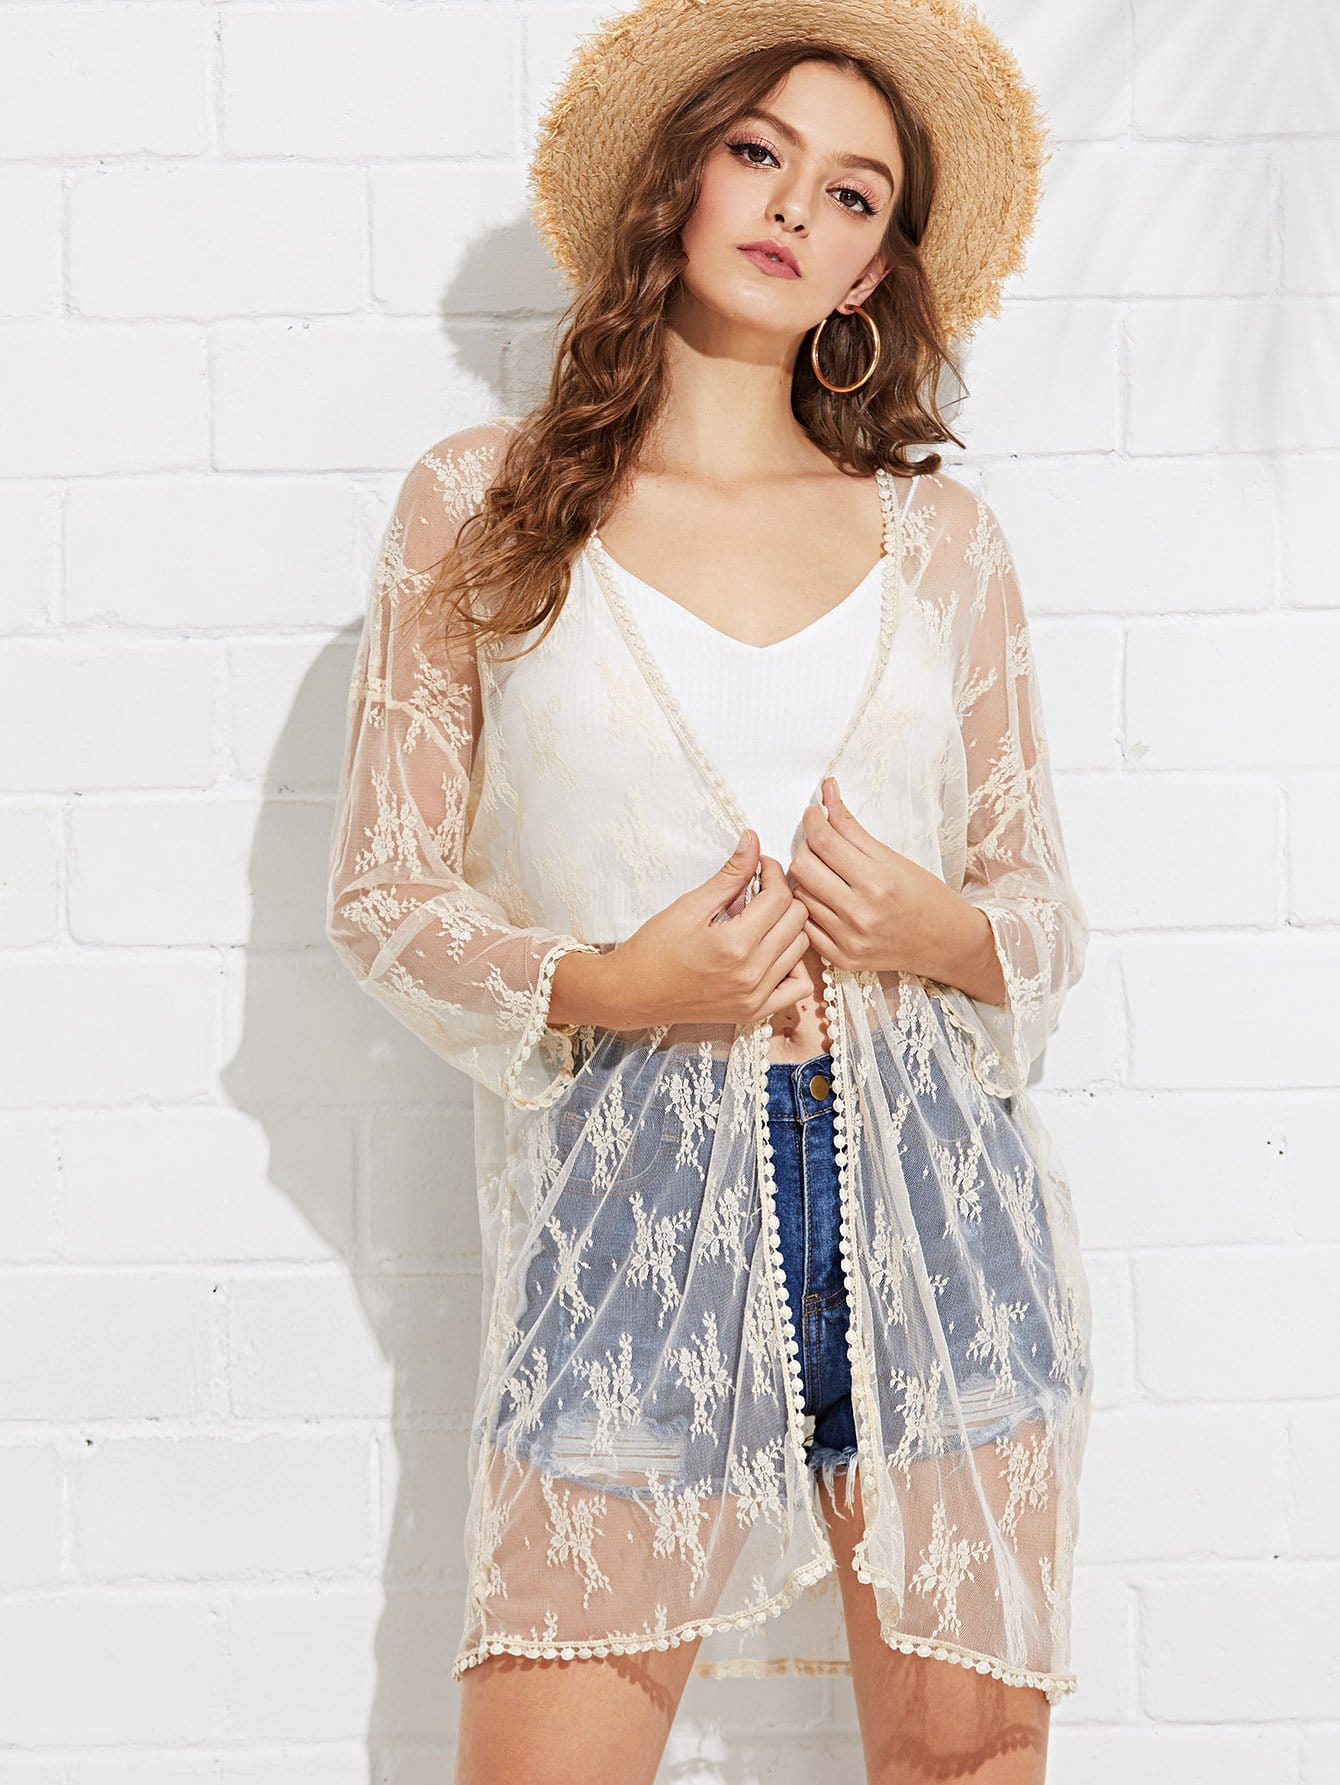 Crochet Trim Sheer Lace Kimono lace trim overknee sheer stockings